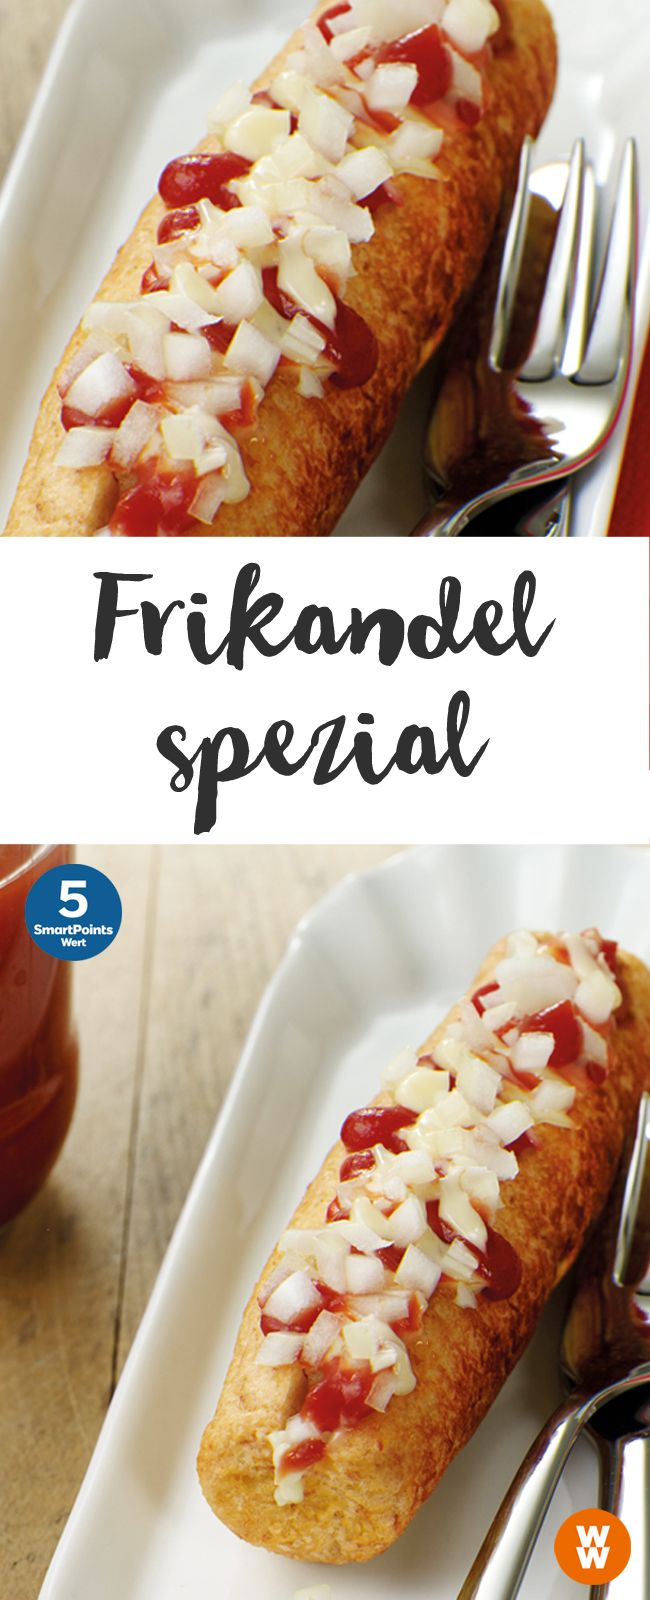 Frikandel spezial | 4 Portionen, 5 SmartPoints/Portion, Weight Watchers, in 45 min. fertig